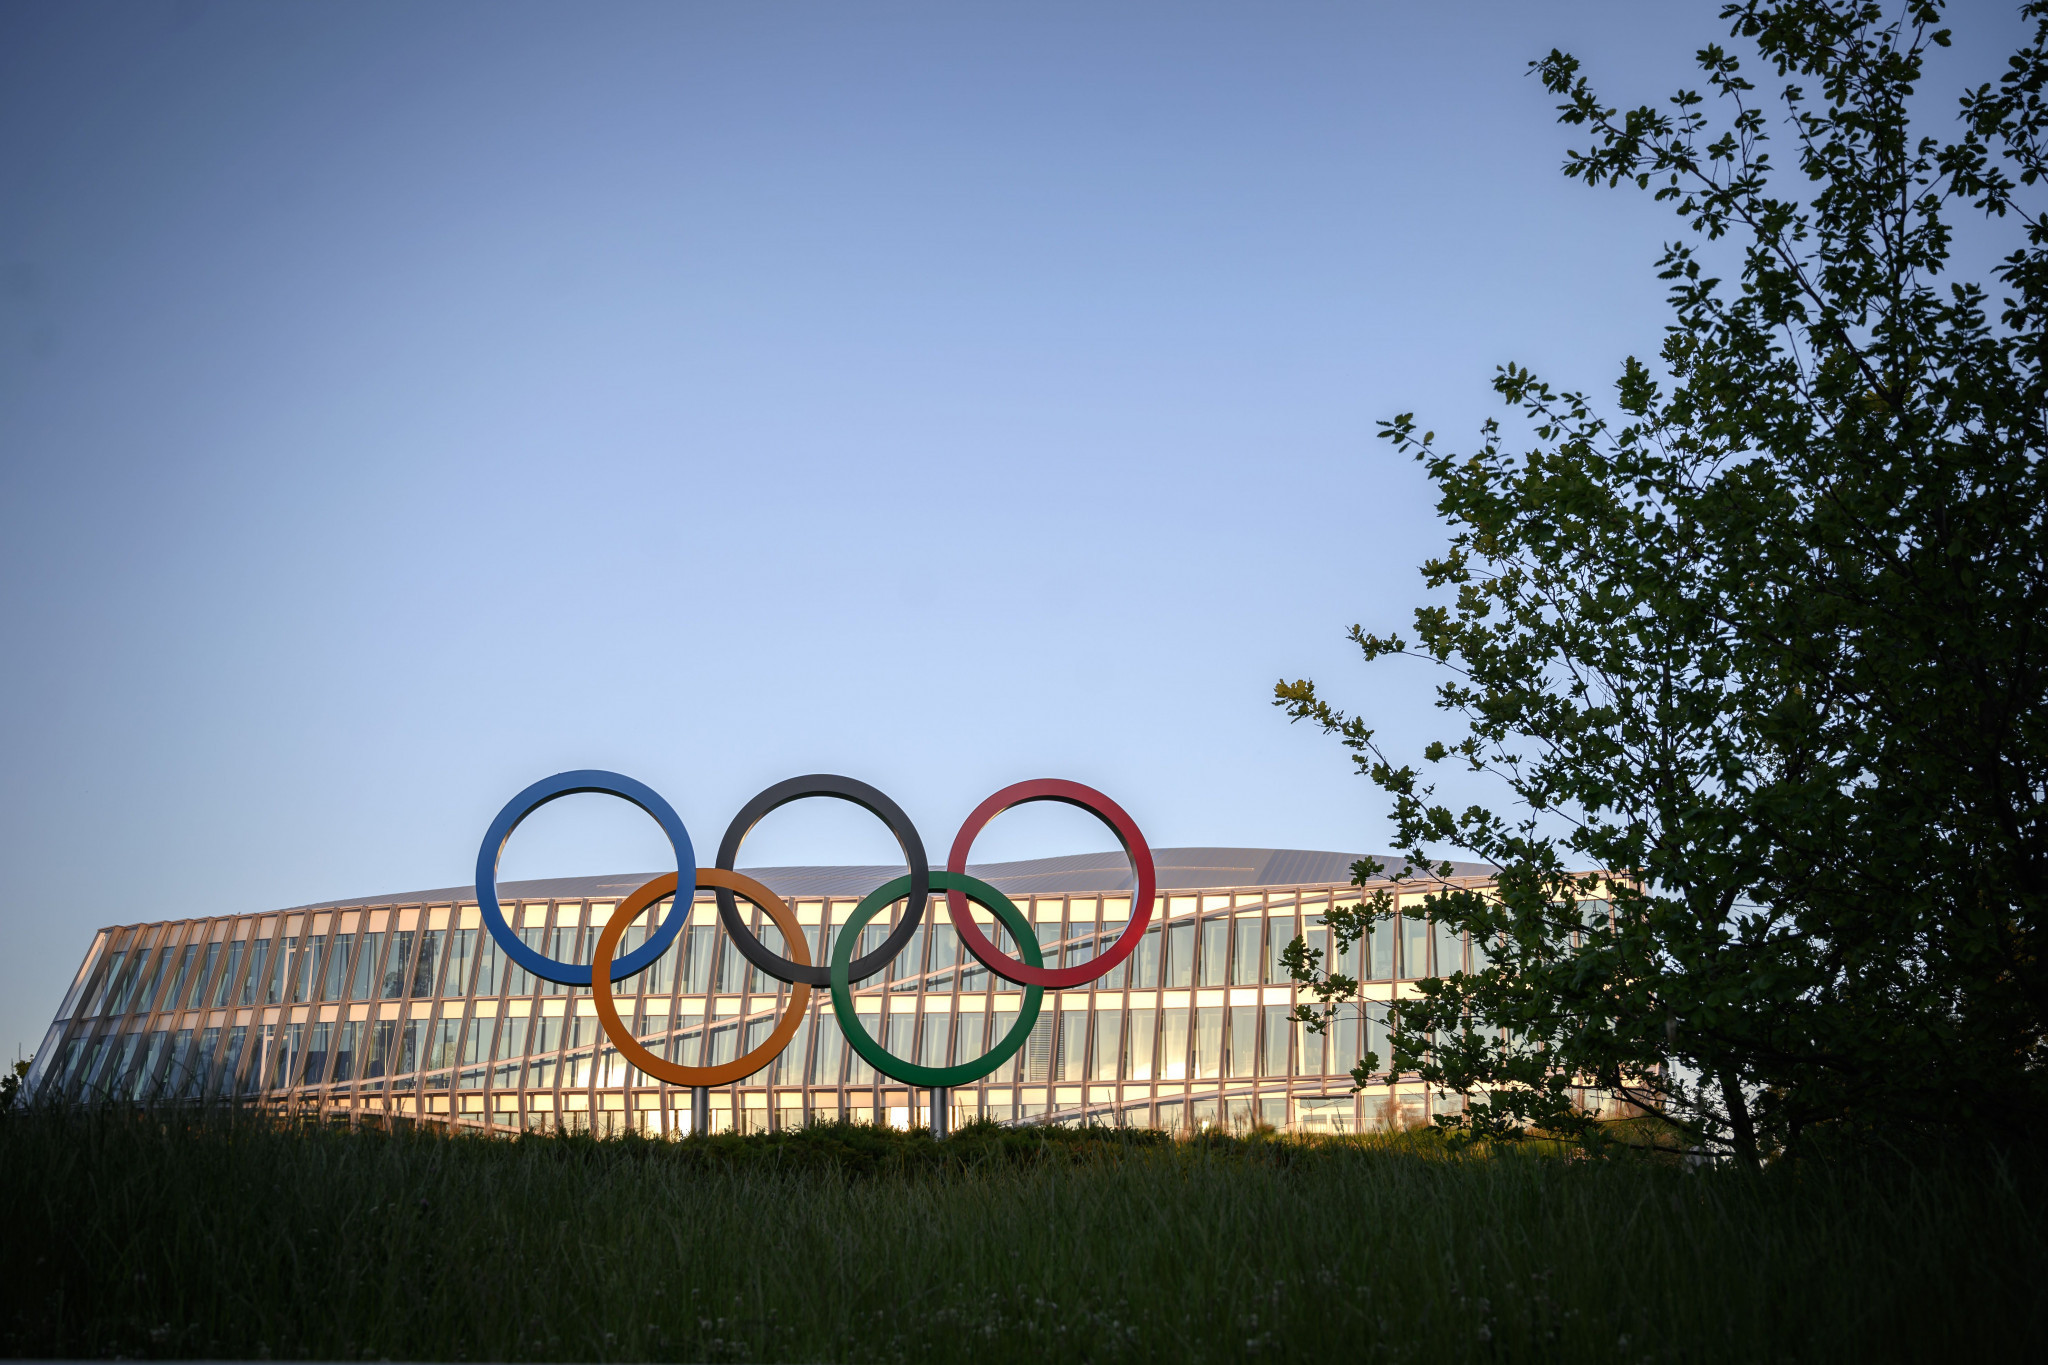 The International Olympic Committee say they will support the IWF's efforts to reform its governance and management ©Getty Images